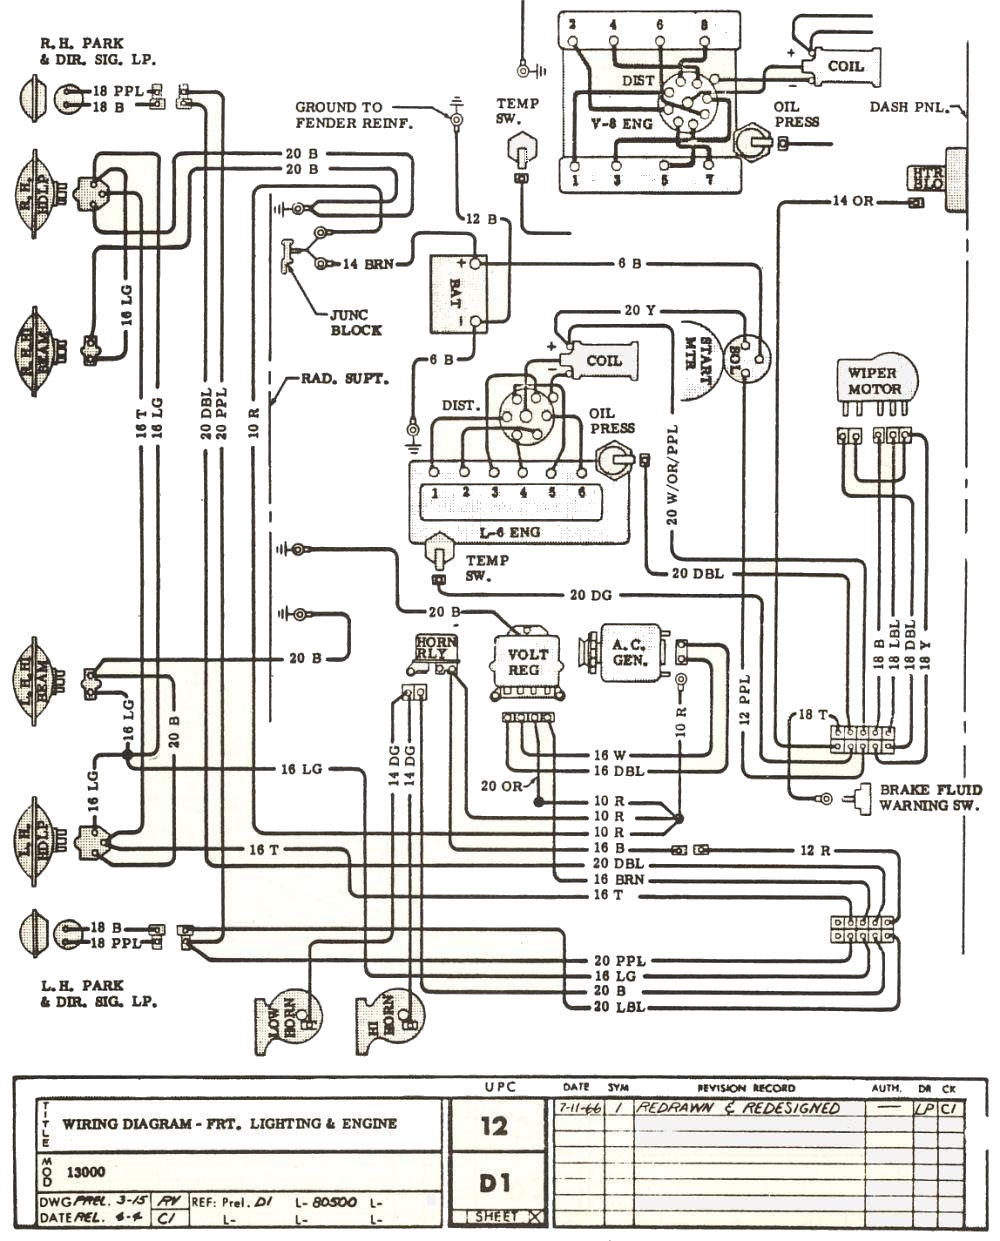 67 chevelle dash wiring diagram